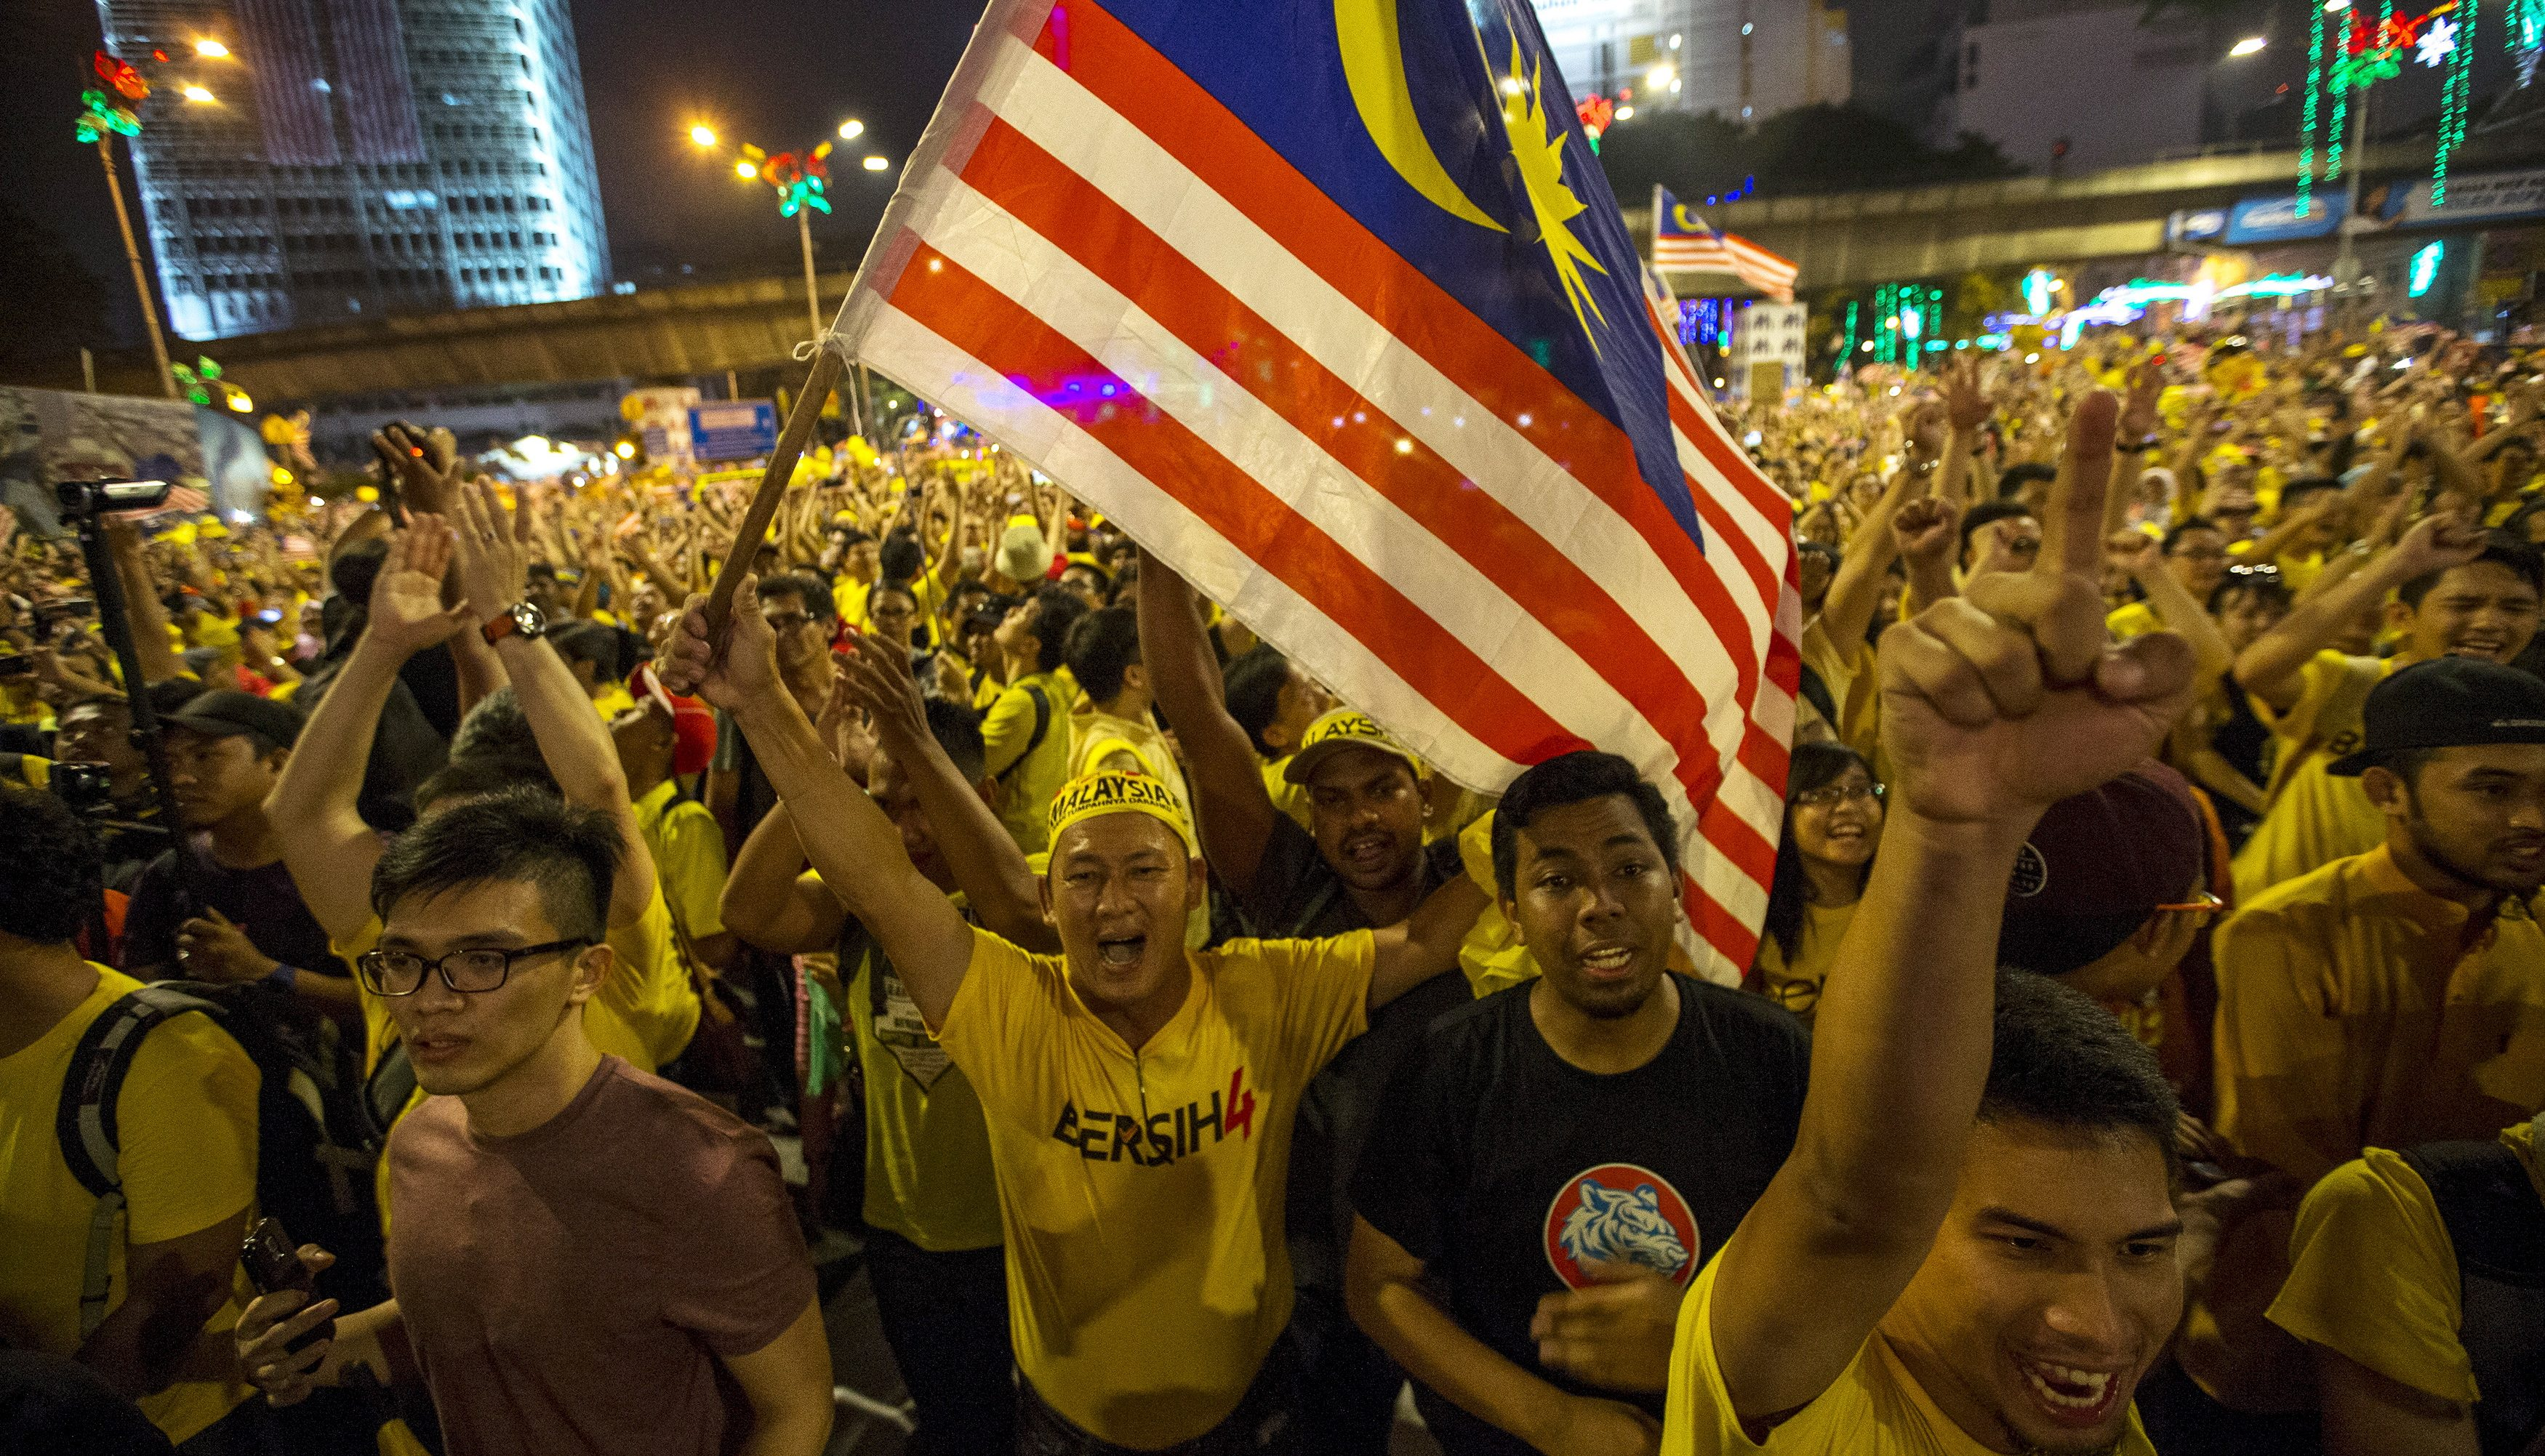 "Supporters of pro-democracy group ""Bersih"" (Clean) shout slogans during a rally near Dataran Merdeka in Malaysia's capital city of Kuala Lumpur, Malaysia,  August 30, 2015. Tens of thousands joined a peaceful protest in Kuala Lumpur on Saturday to demand the resignation of Prime Minister Najib Razak, bringing to the streets a political crisis over a multi-million-dollar payment made to an account under his name."